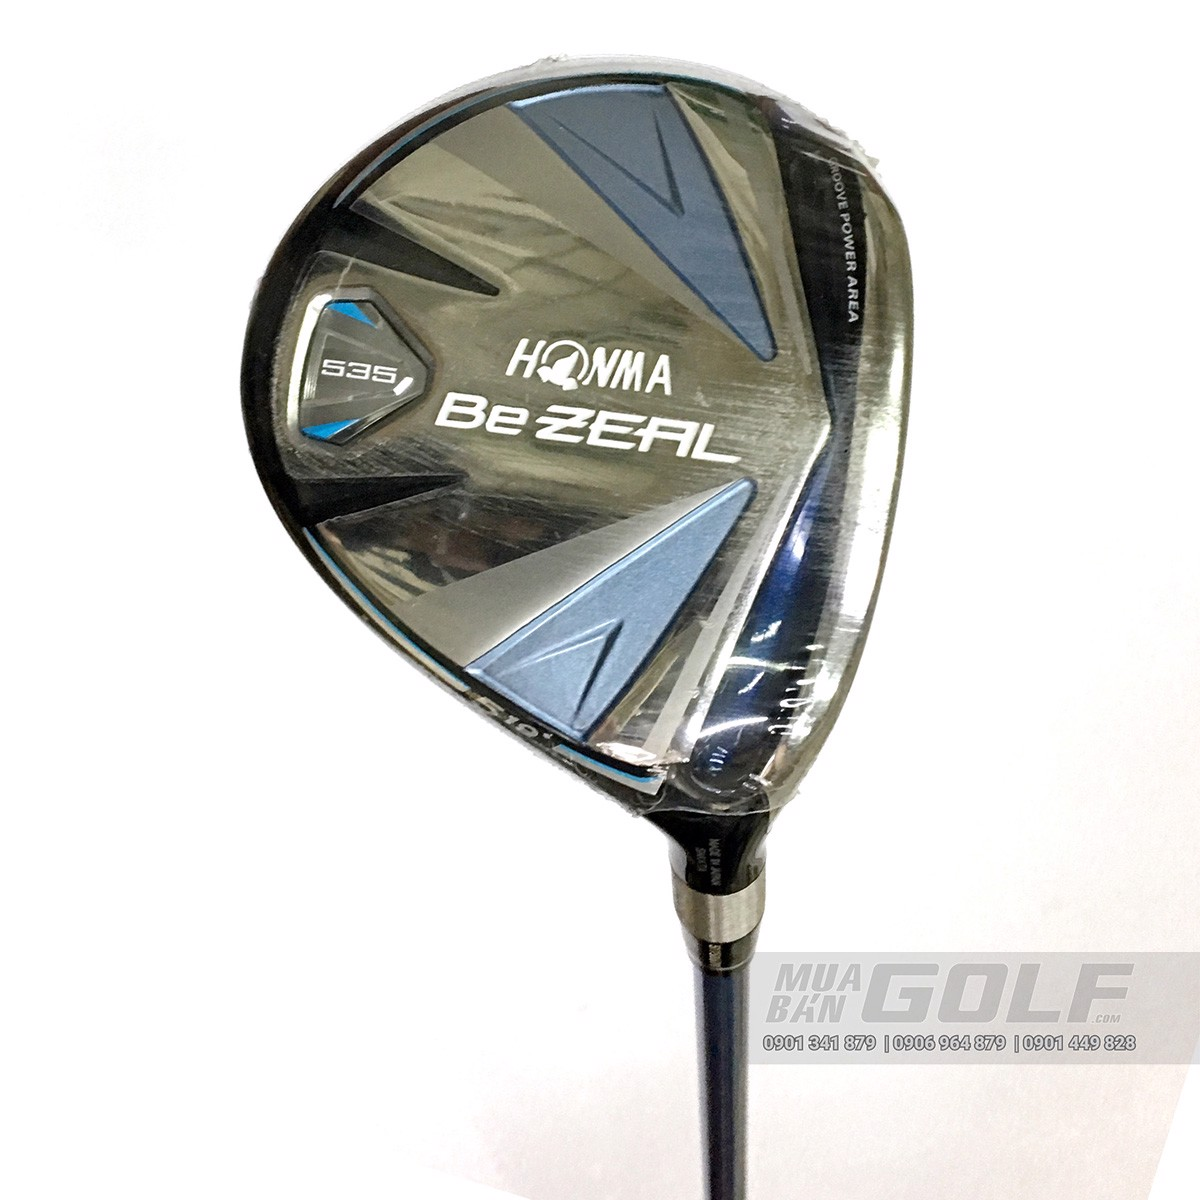 Gậy golf Fairway cũ HONMA BEZEAL 535 Lady Fairway5 SCF HM6